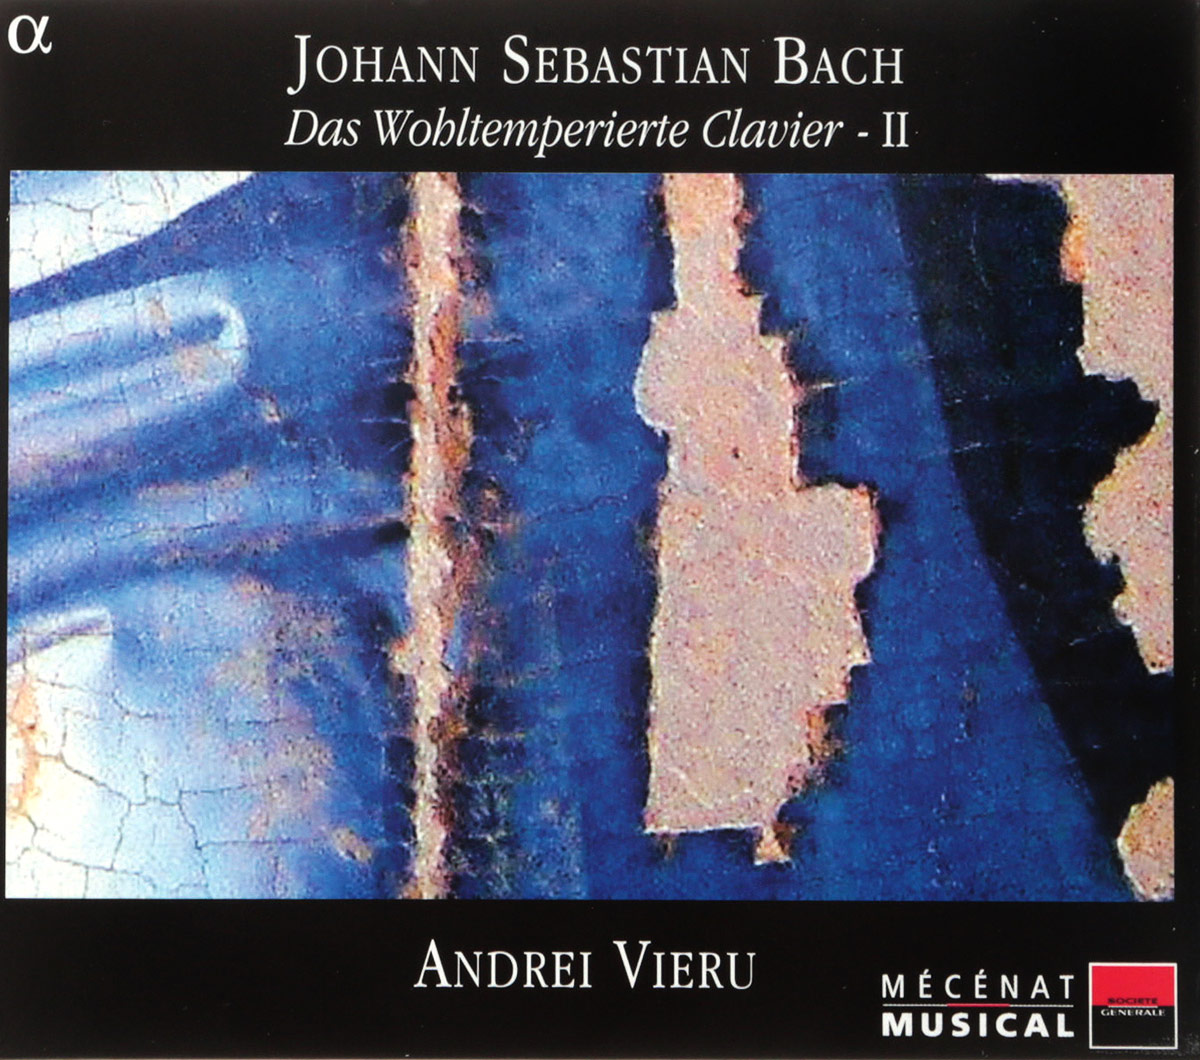 VARIOUS. BACH, J.S./THE WELL-TEMPERED CLAVIER, VOL.II BWV870-893/ANDREI VIERU (PIANO). 3 недорго, оригинальная цена